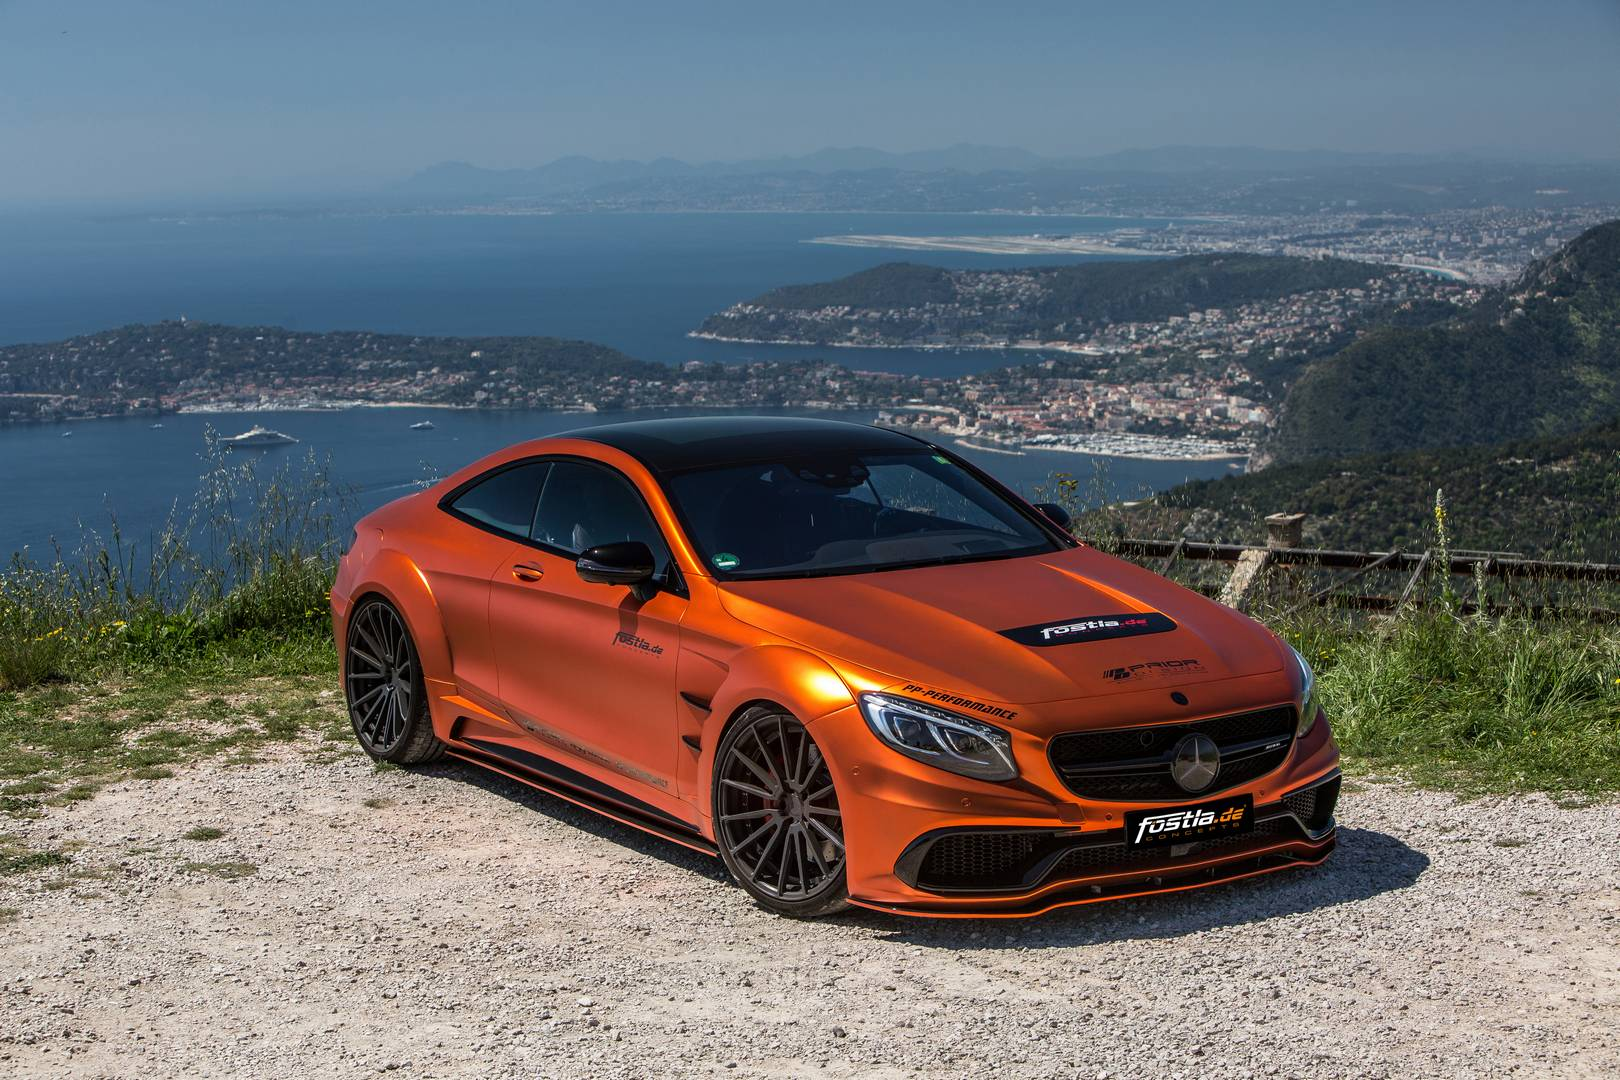 740hp Orange Chrome Matt Mercedes Amg S63 By Fostla De